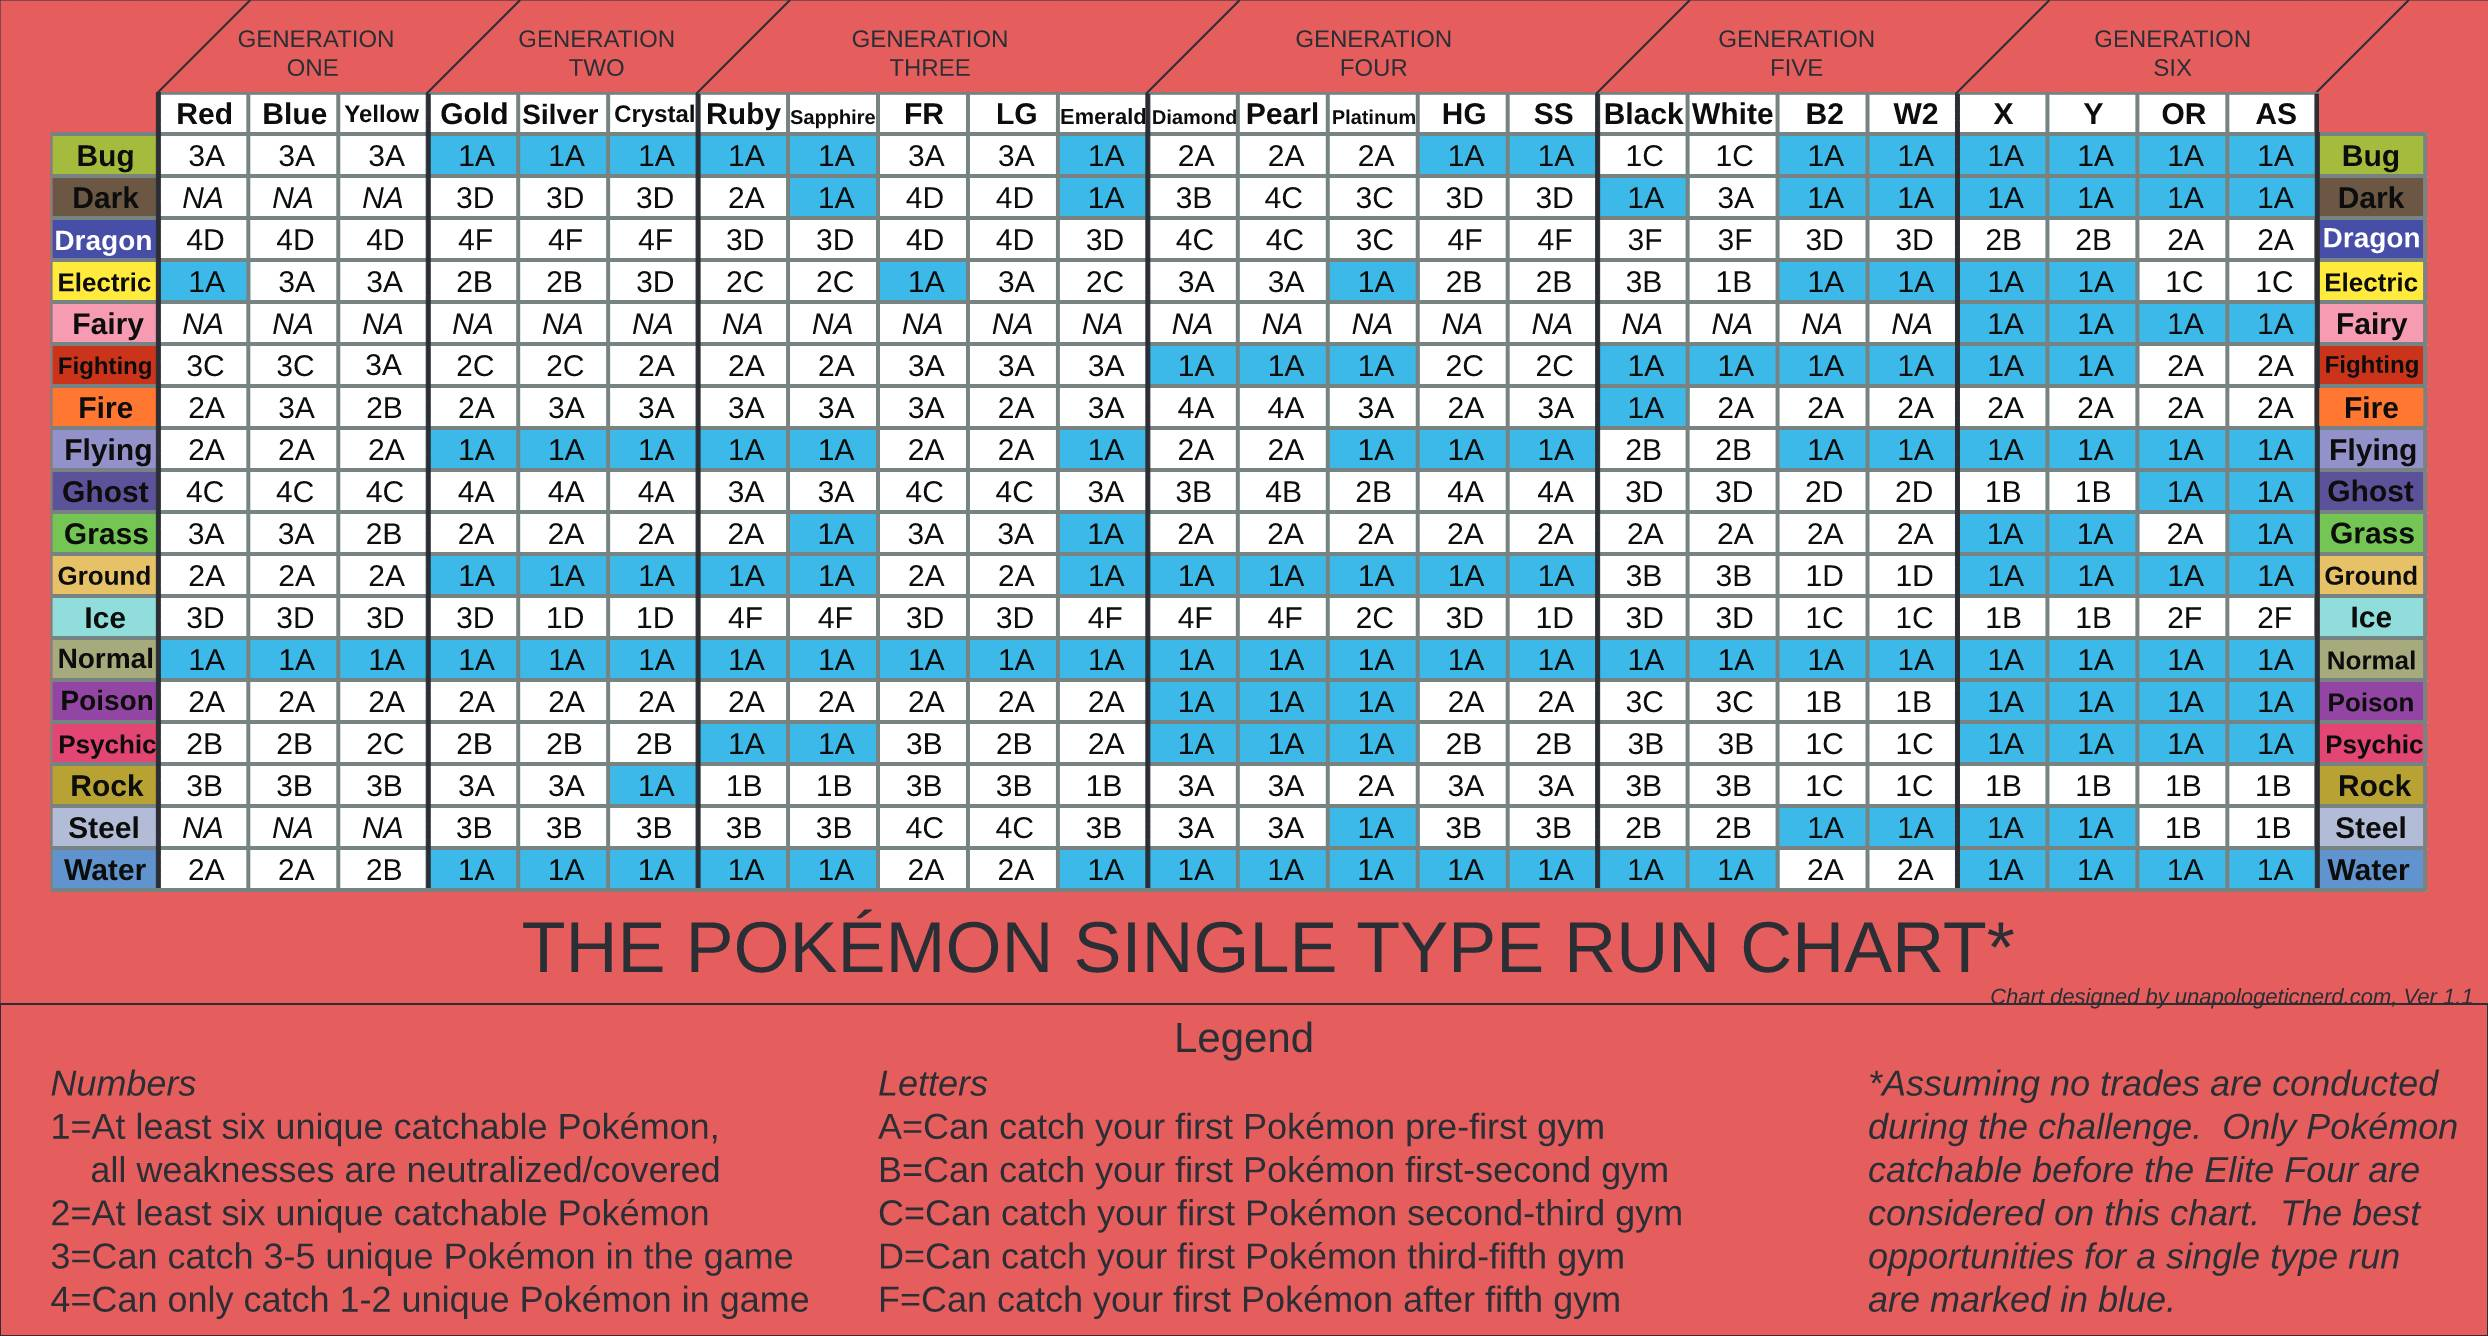 The Best Pokémon Games and Types for a Single Type Run | The